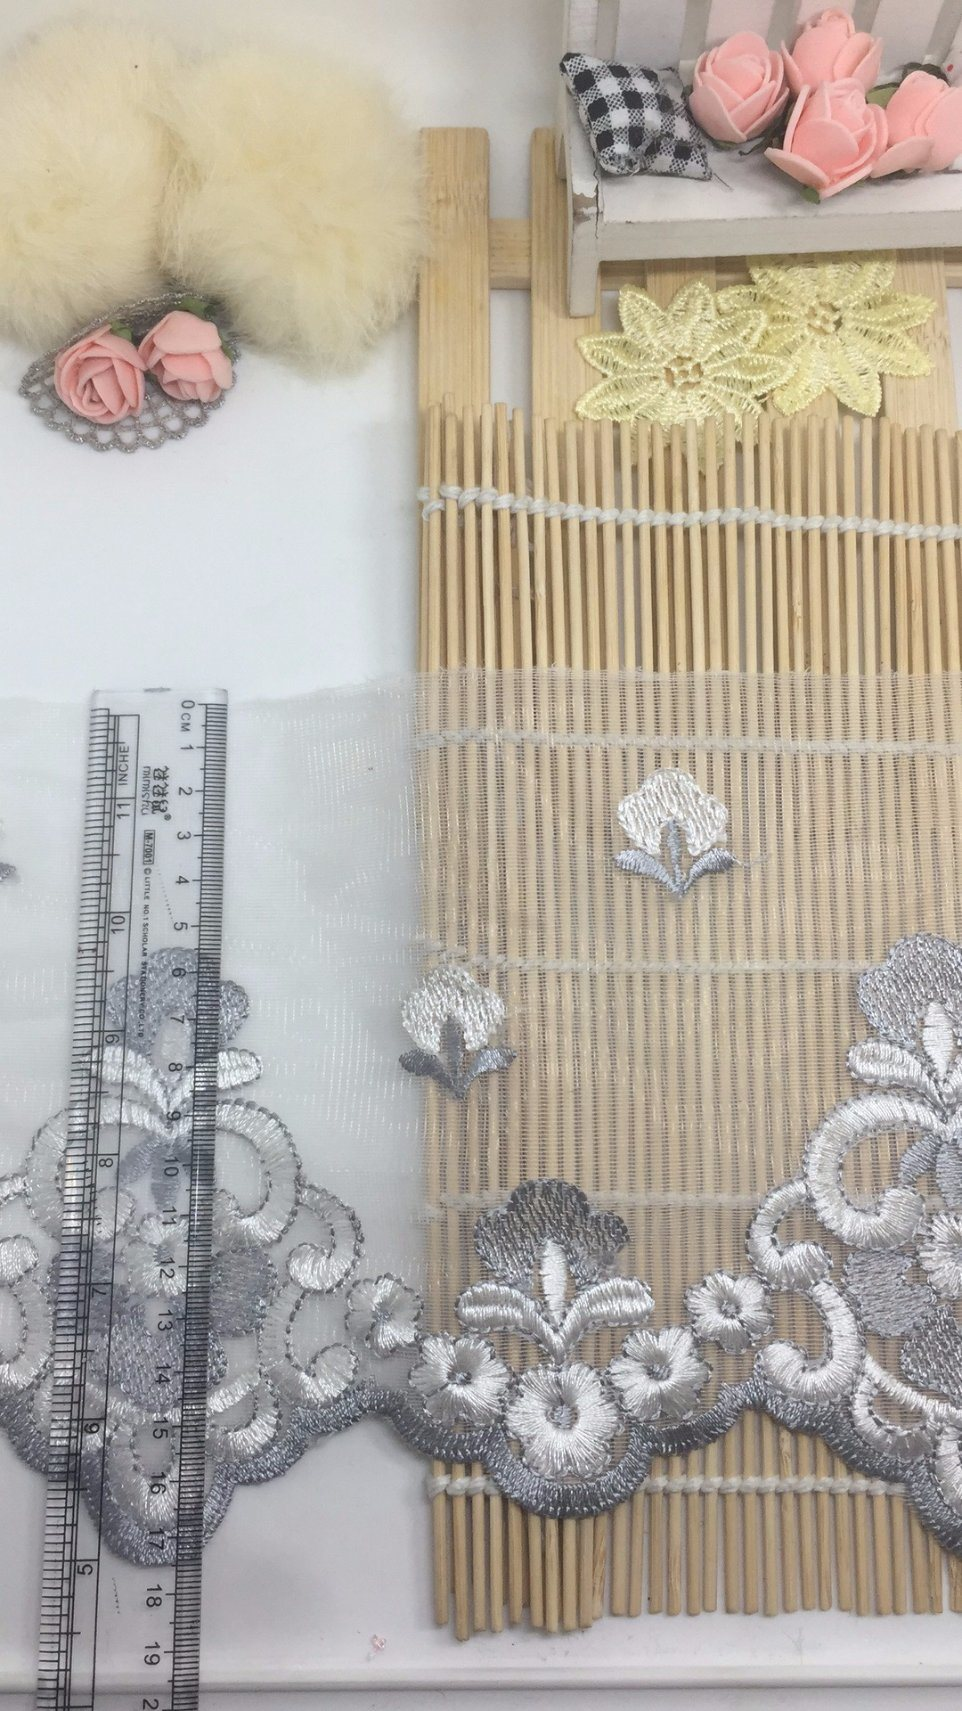 17.5cm Width Bi-Color Embroidery Trimming Polyester Thread Net Mesh Lace for Garments Accessory & Home Textiles & Curtains Decoration (S104V)